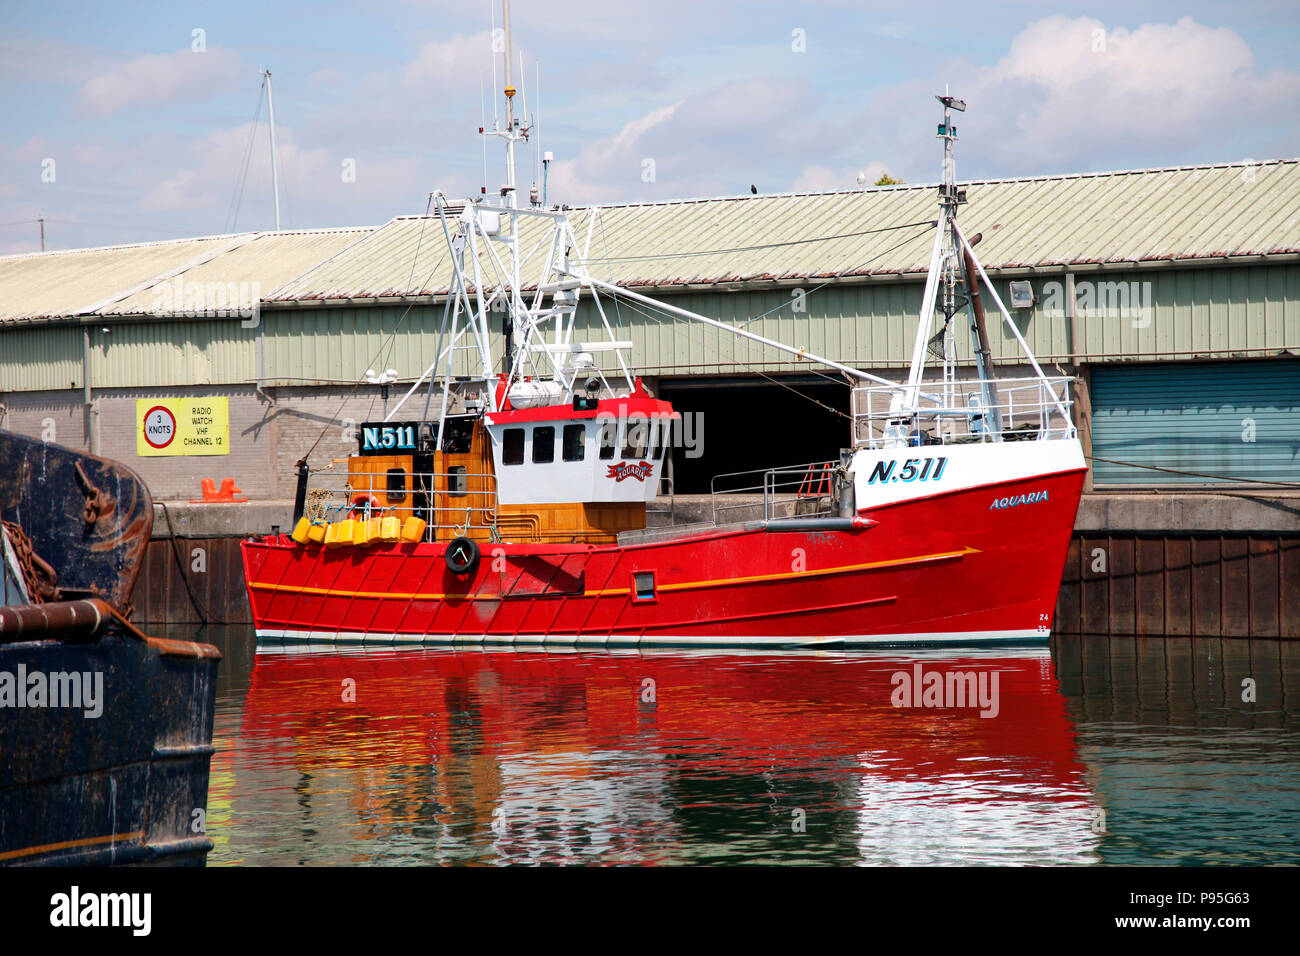 The fishing trawler Arcadia, docked in Kilkeel Harbour, home to Northern Ireland's largest fishing fleet - Stock Image